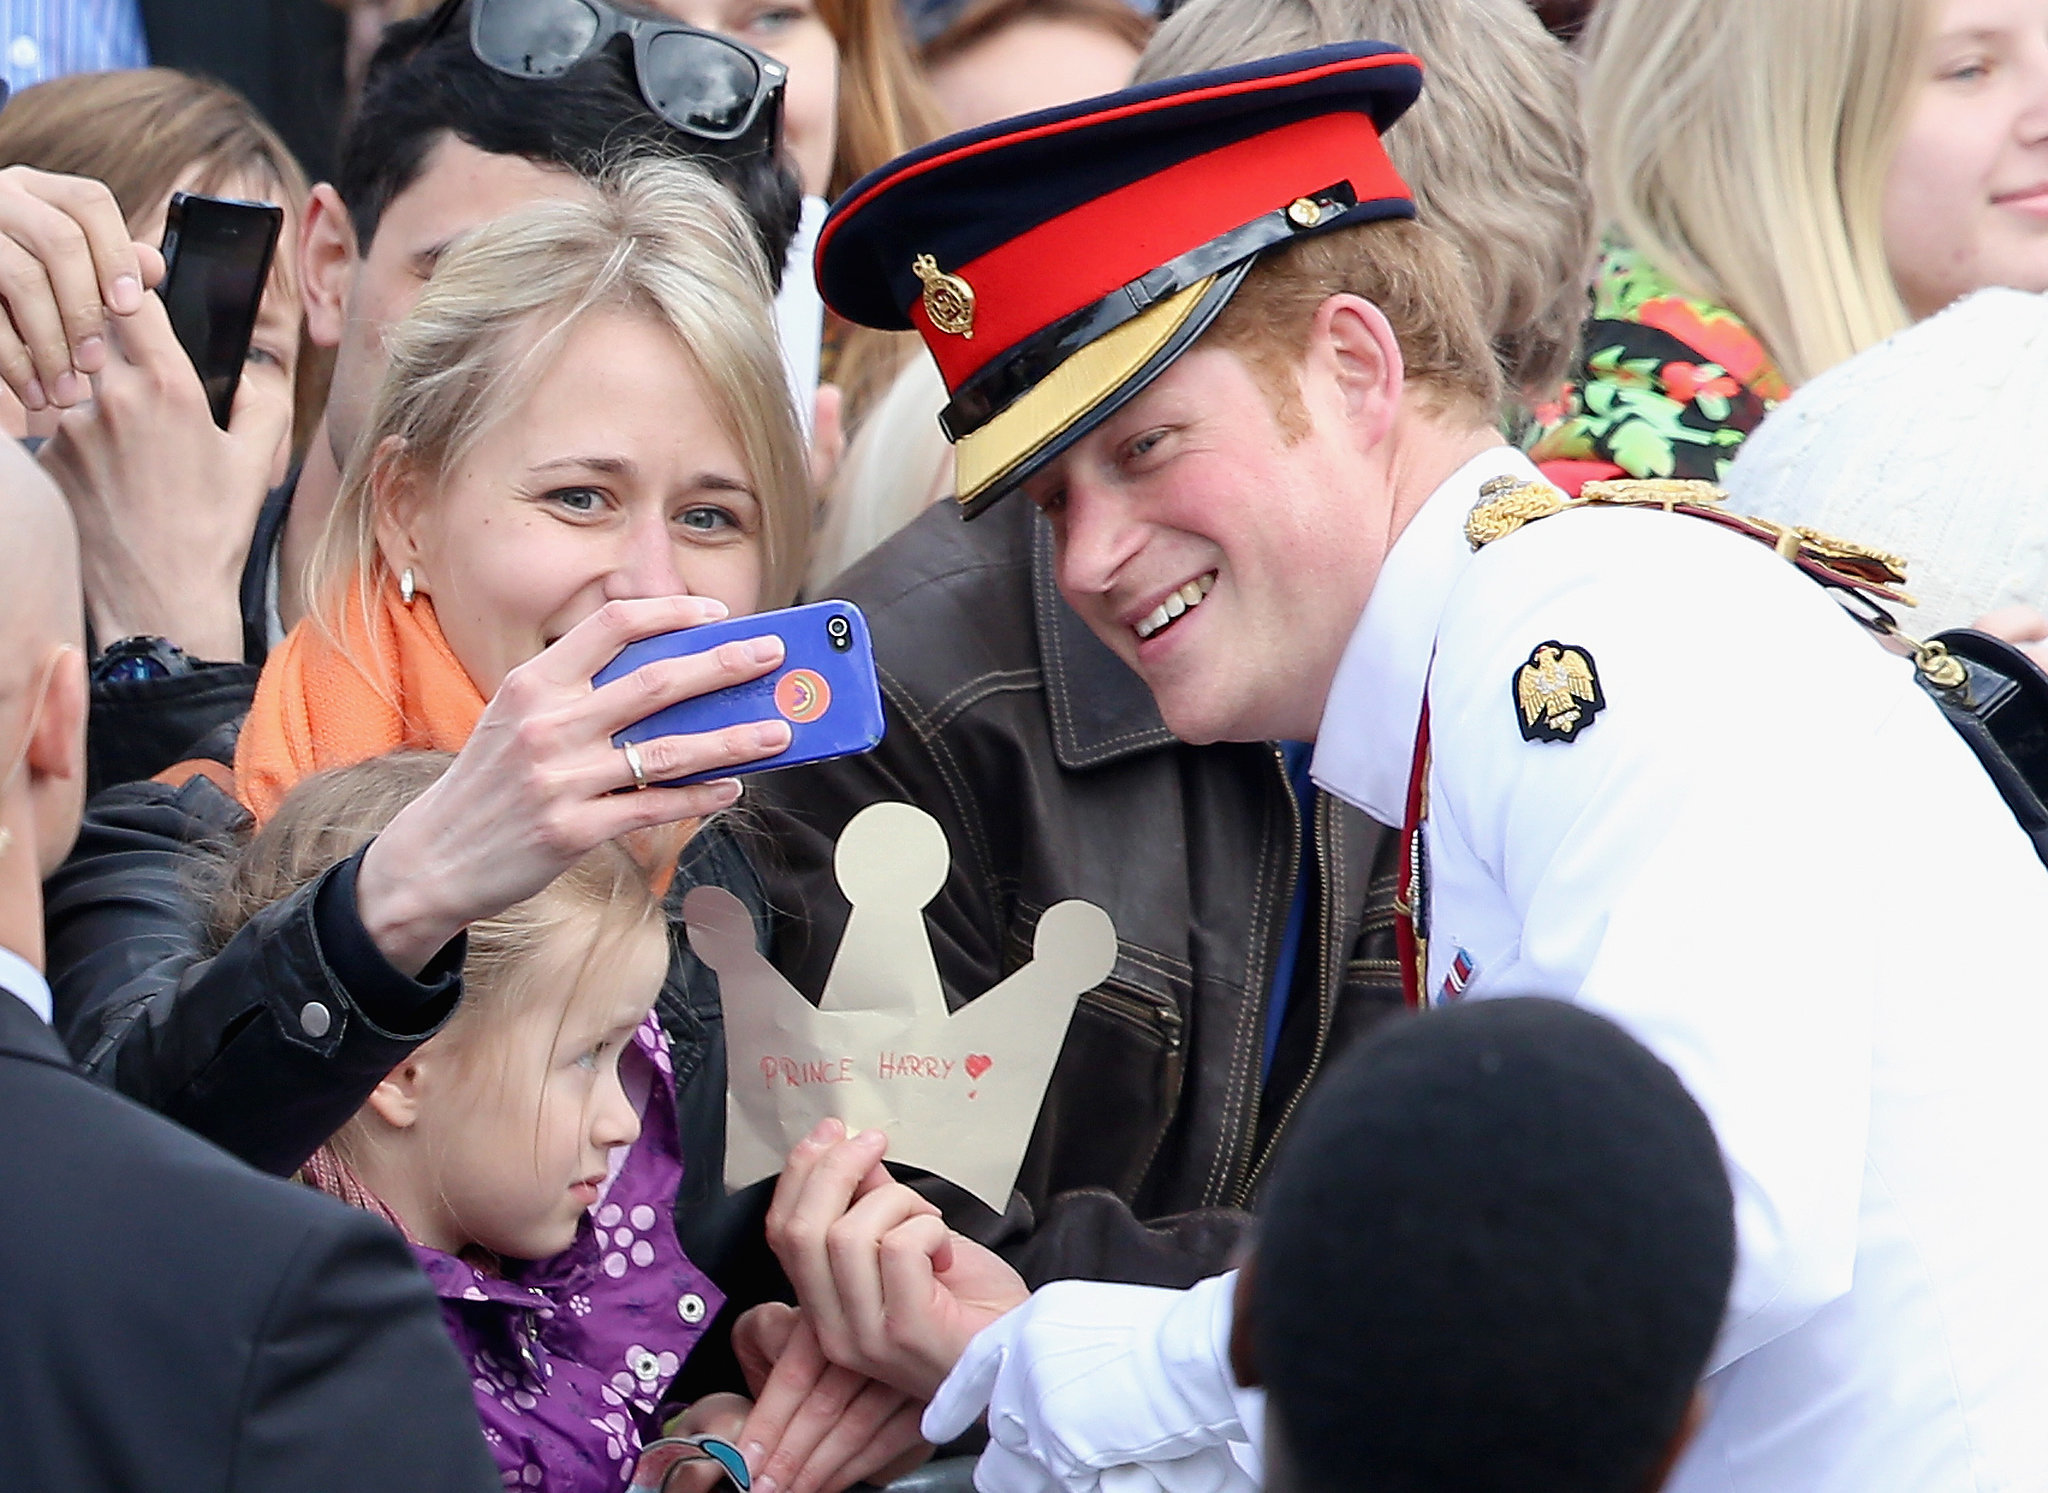 In May 2014, Prince Harry paused to take a selfie with a young woman in Estonia.